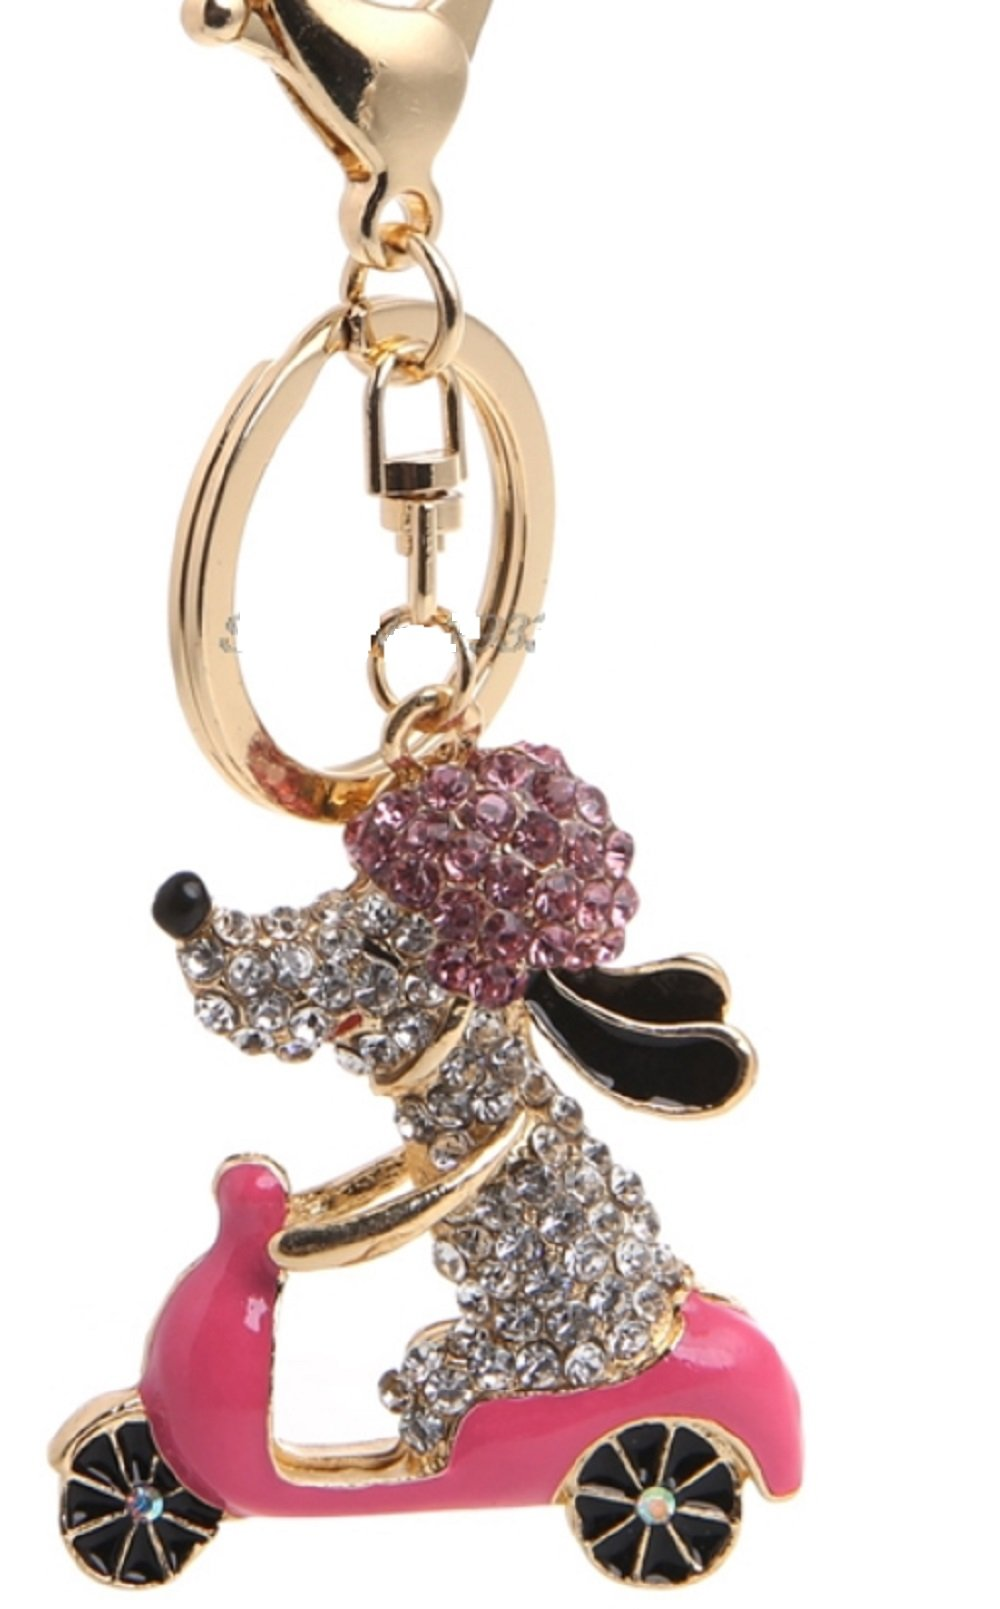 Snoopy DOG Riding Pink Scooter Key Chain is Embellished with Pink & Clear Crystal Rhinestones.Gold Ring & Lobster Claw.Perfect Gift for the Woman in your Life who Loves to Ride: